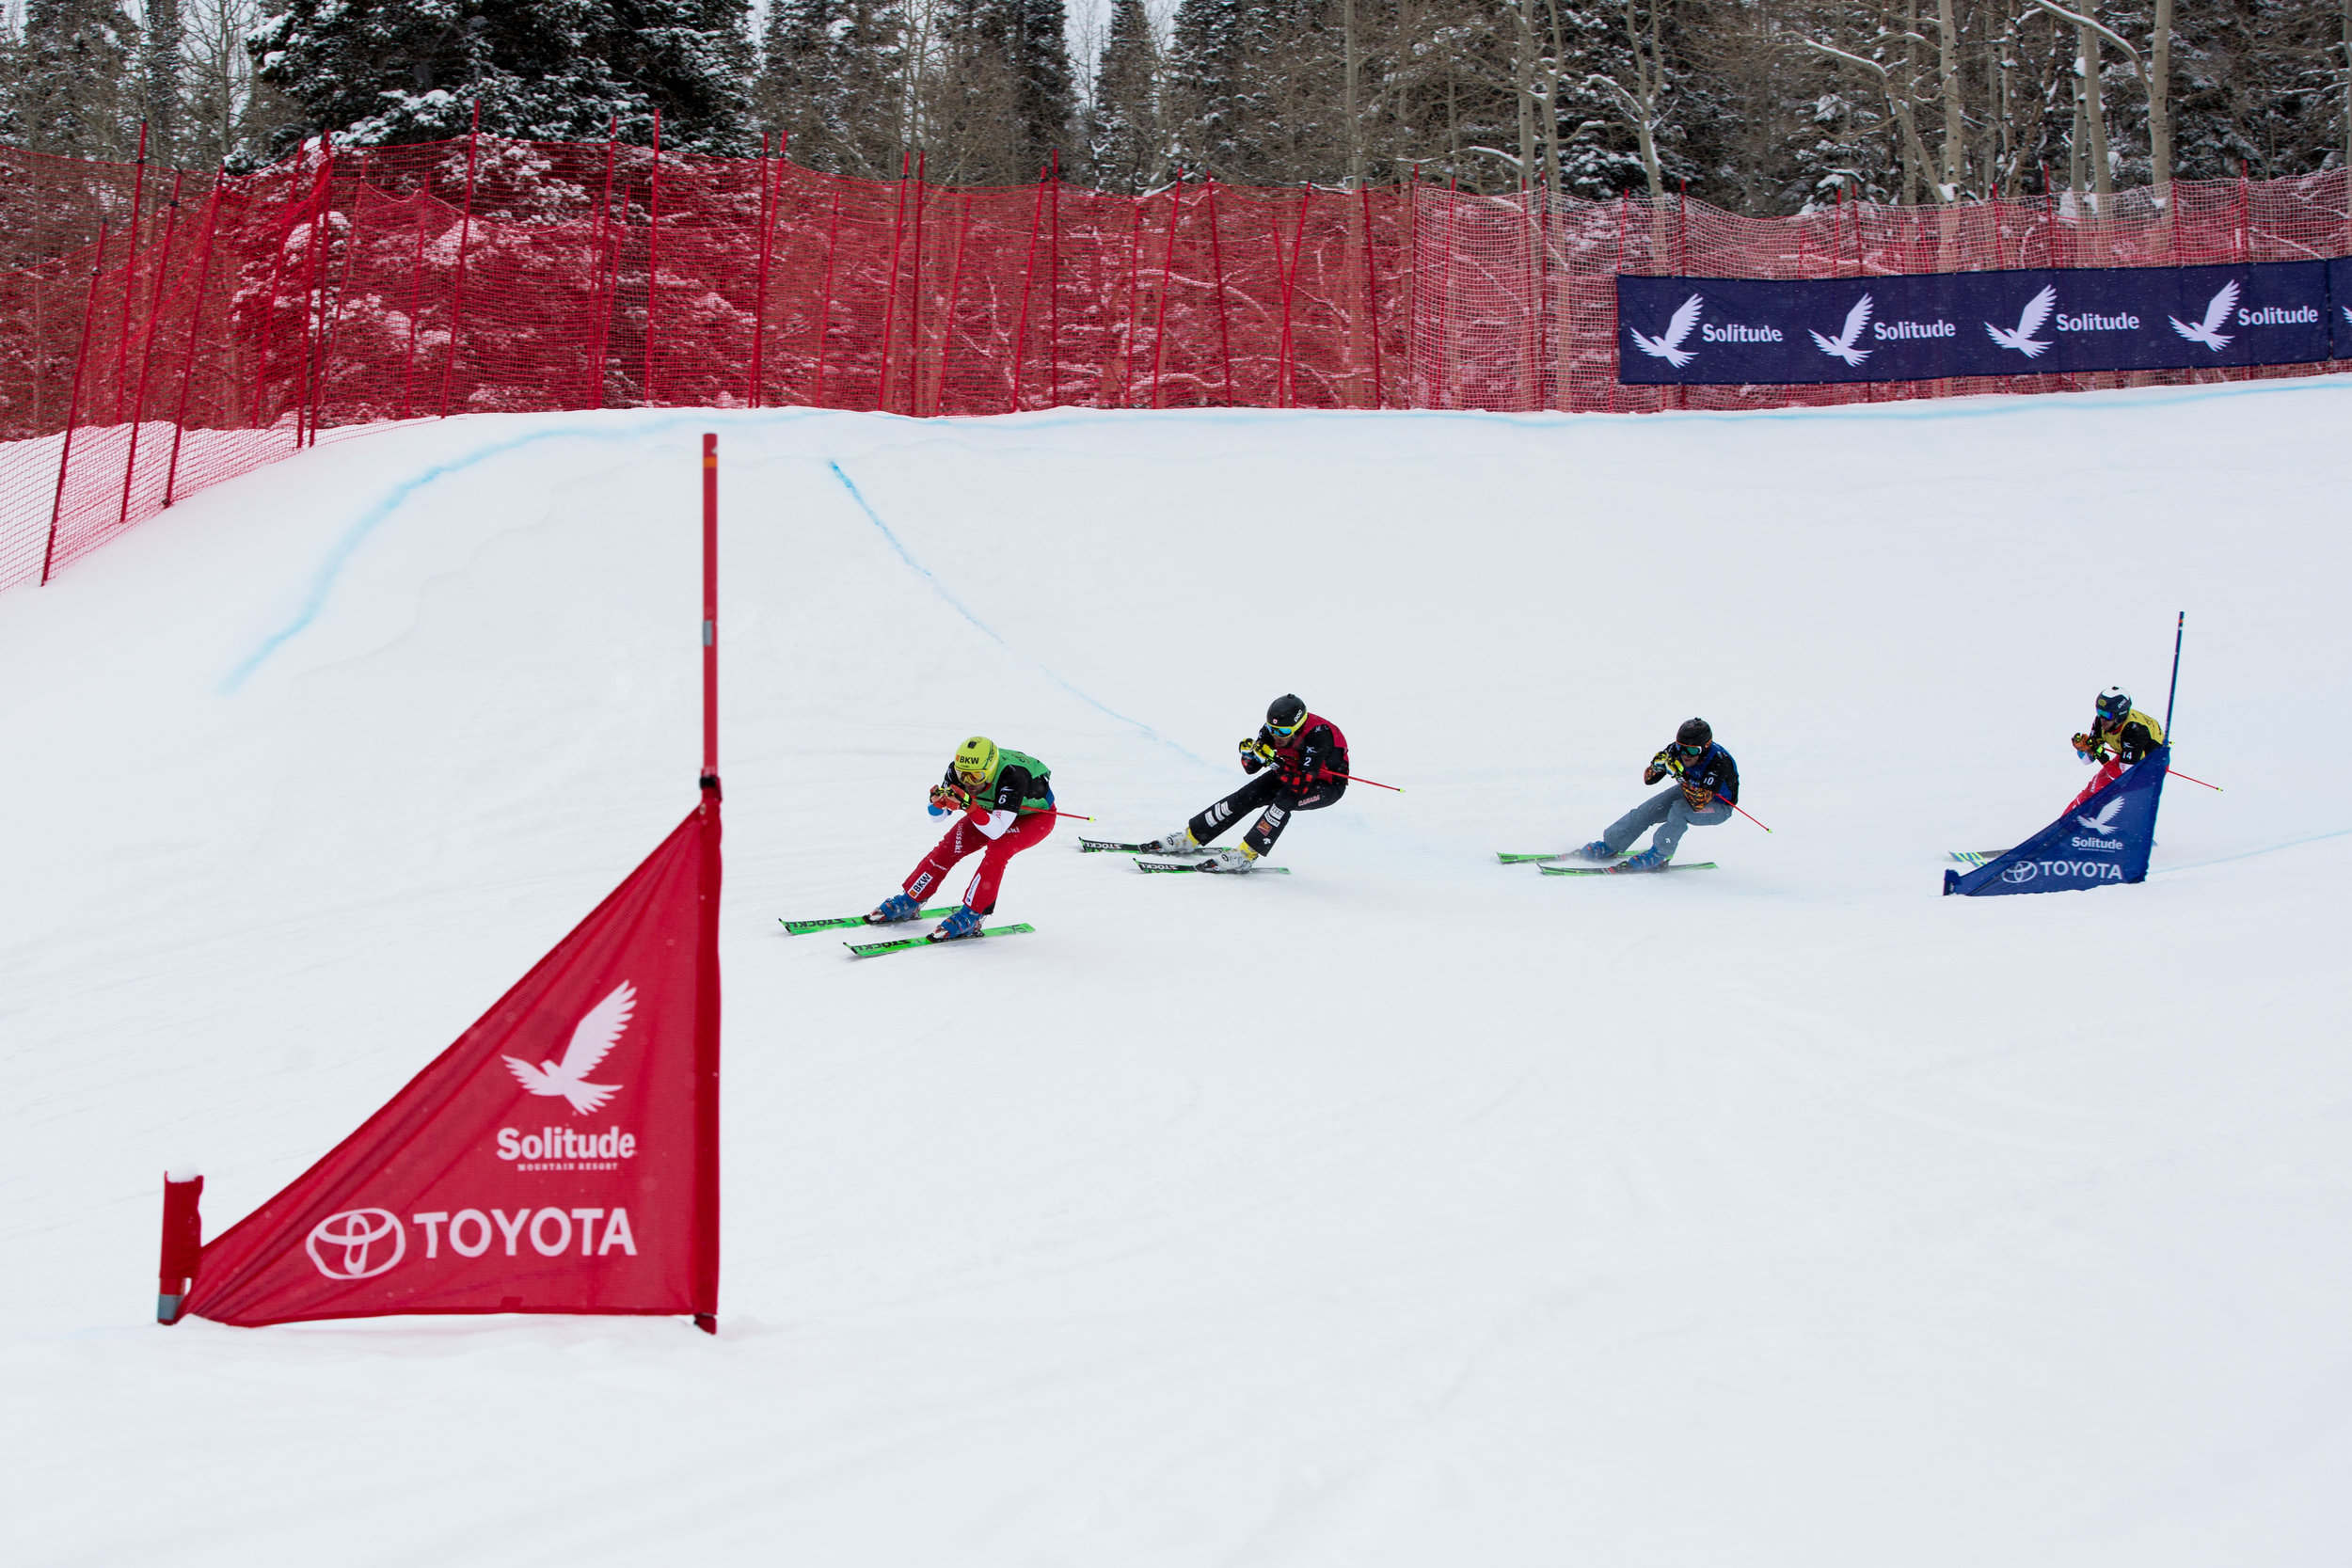 2017 Toyota U.S. Grand Prix - Skicross at Solitude Resort